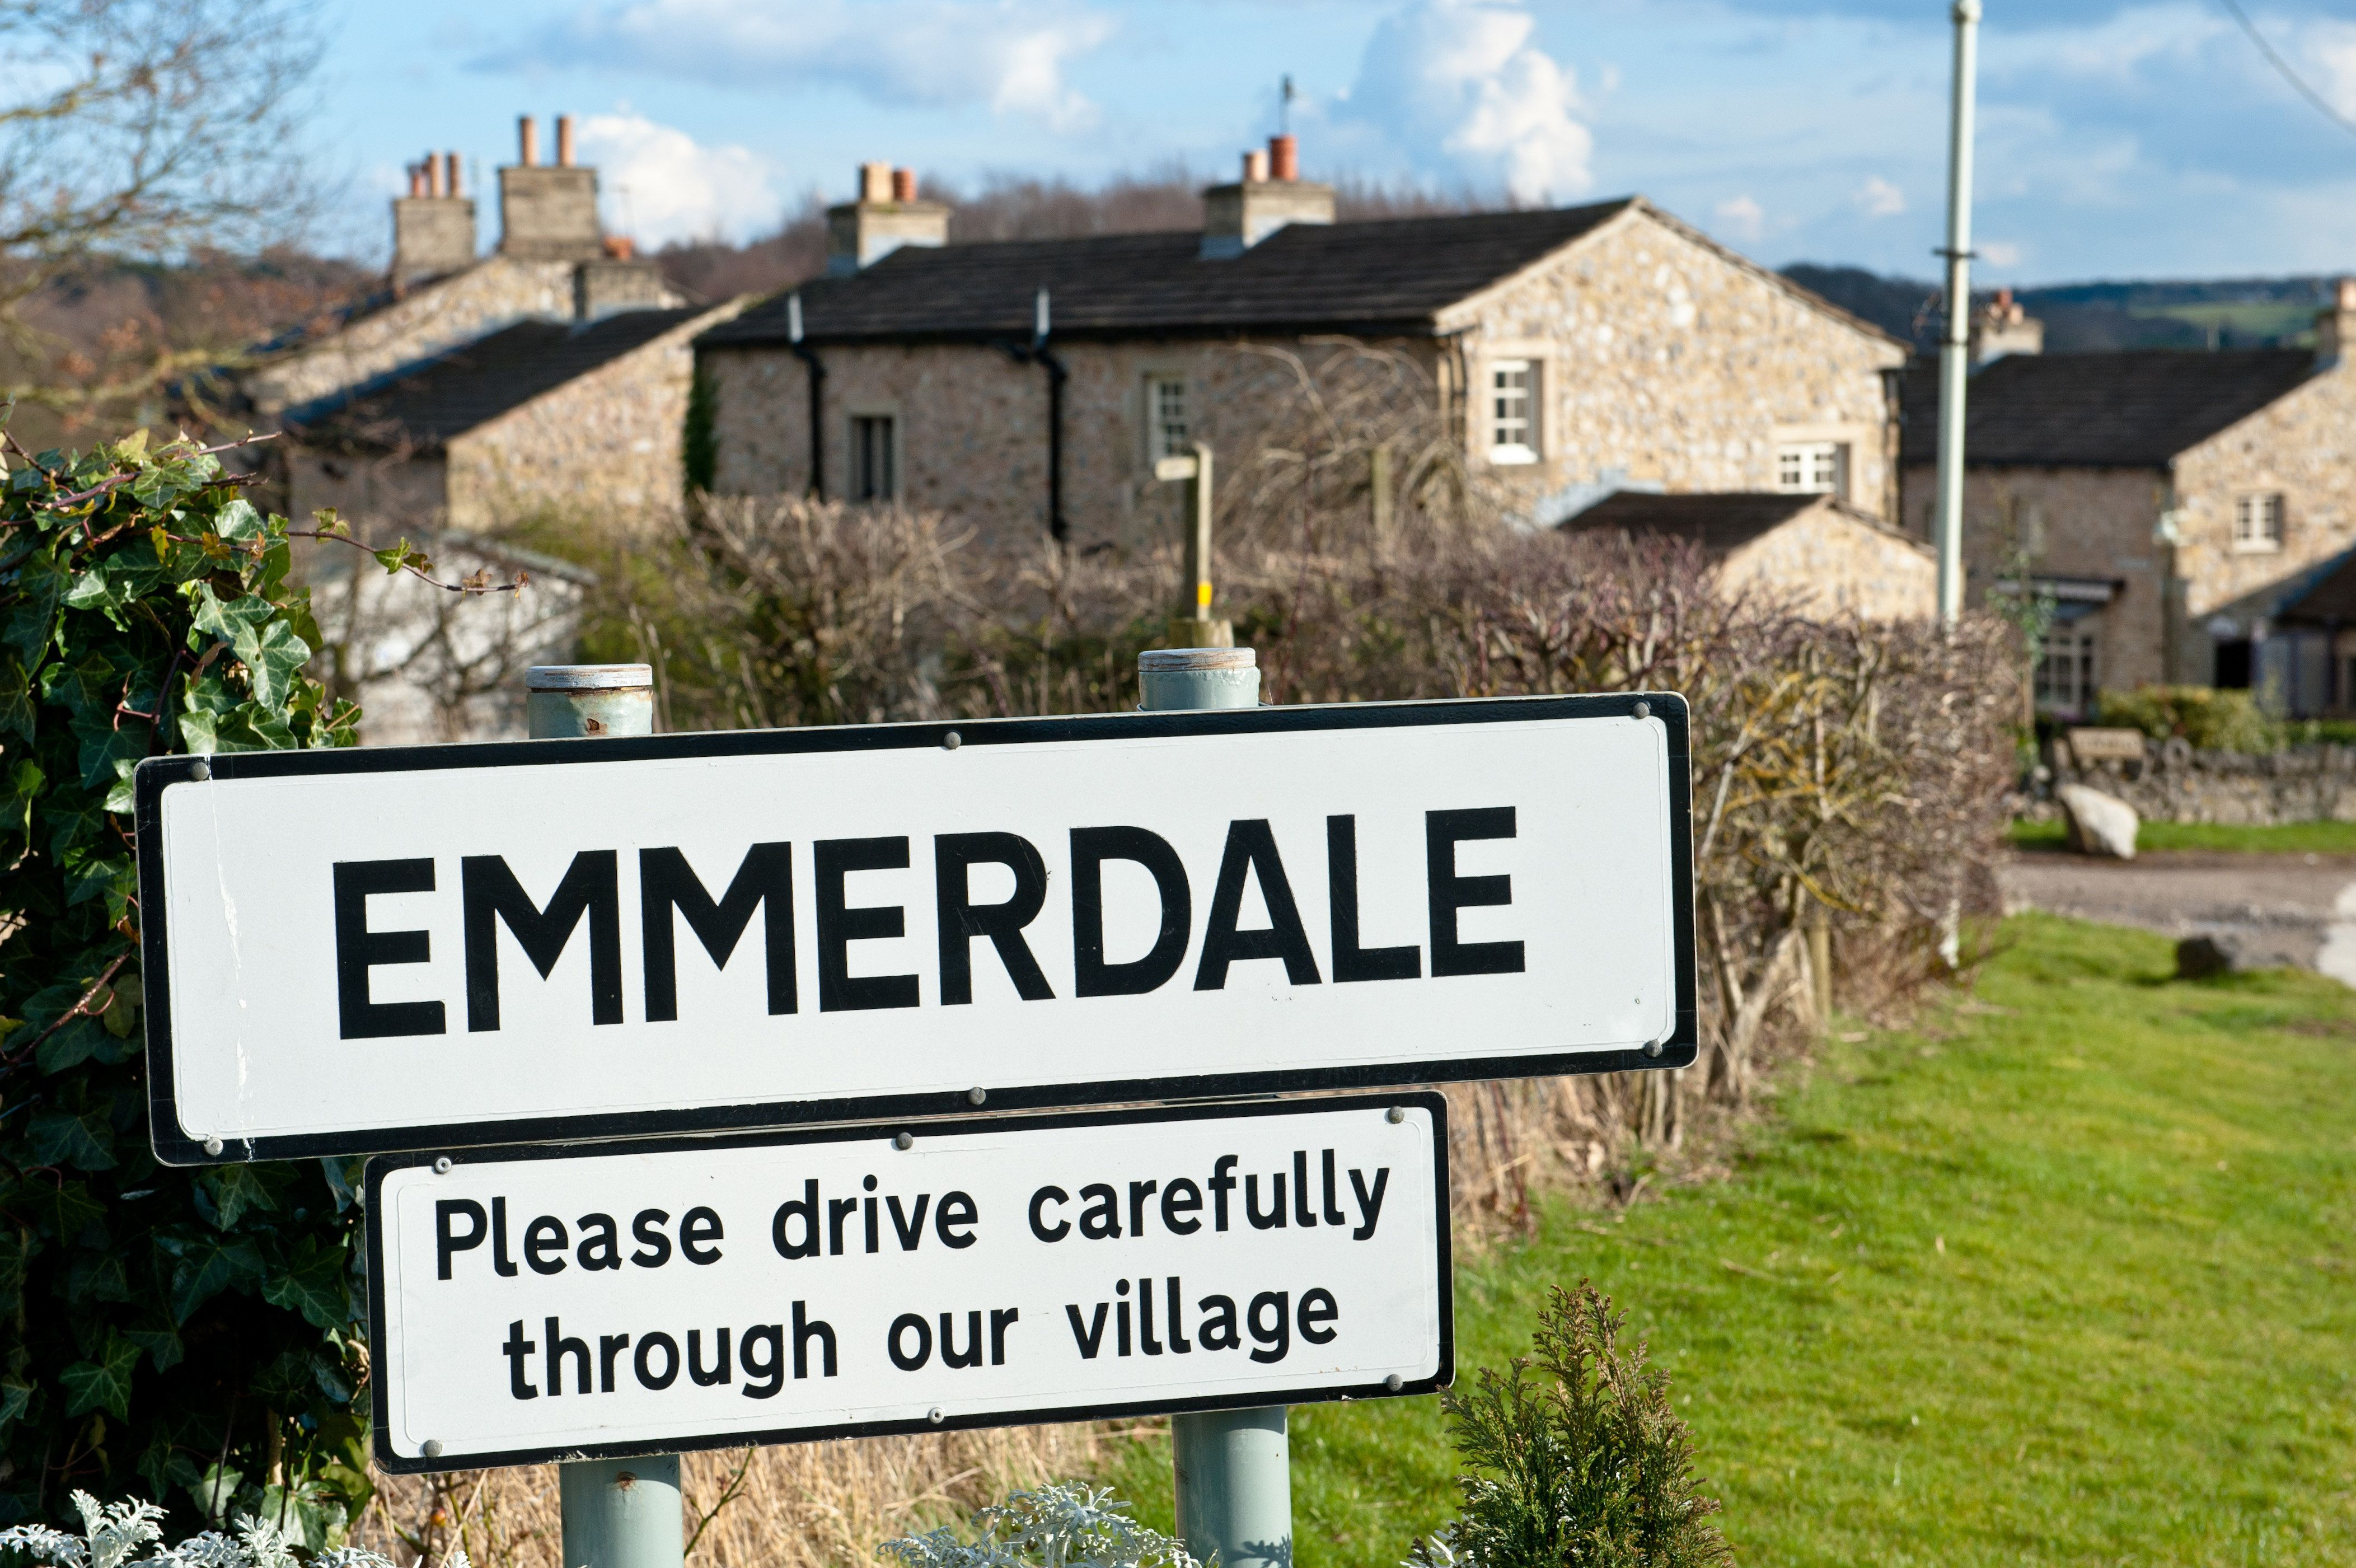 Death In The Dales? 'Emmerdale' Producer Teases New